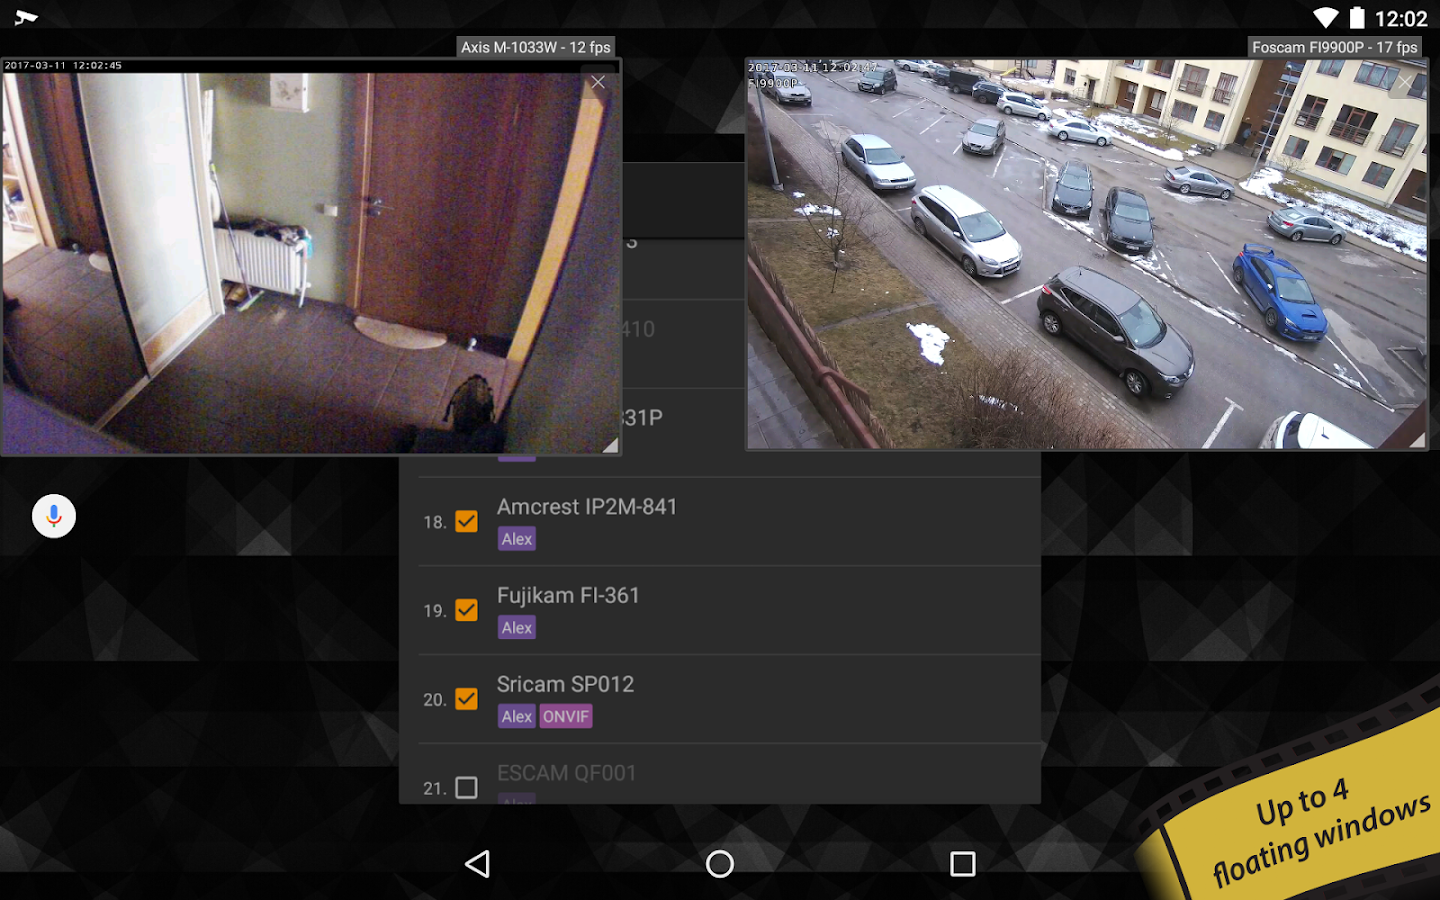 tinyCam PRO - Swiss knife to monitor IP cameras Screenshot 16